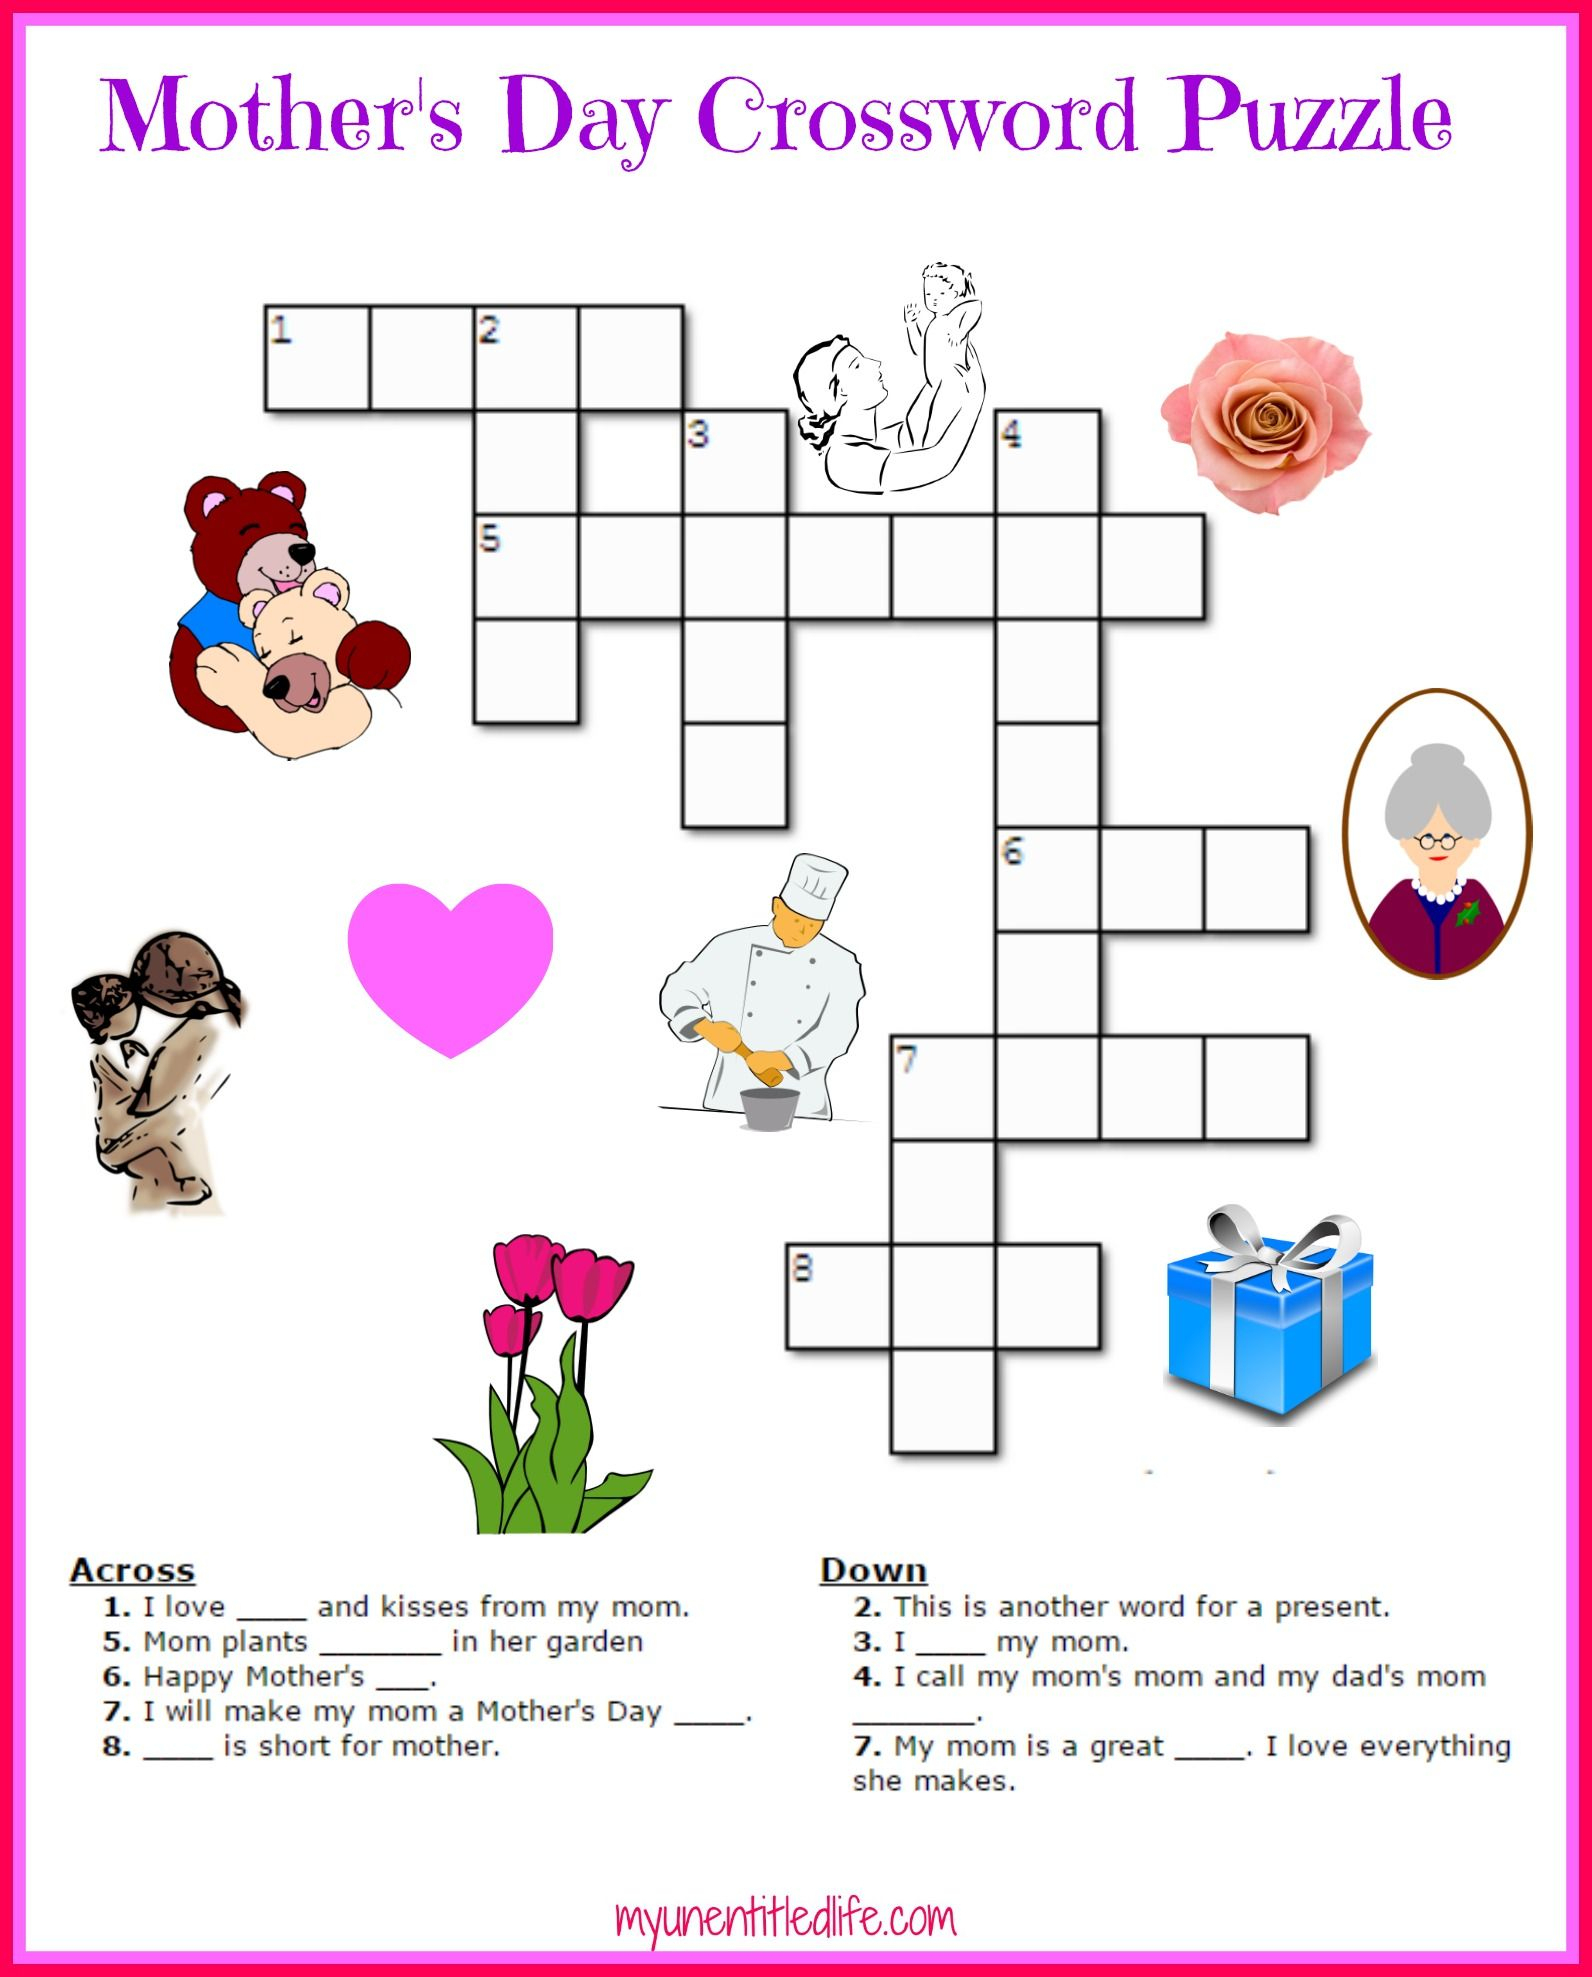 Free Mother's Day Crossword Puzzle Printable | Crafts For Kids - Printable Puzzle Of The Day